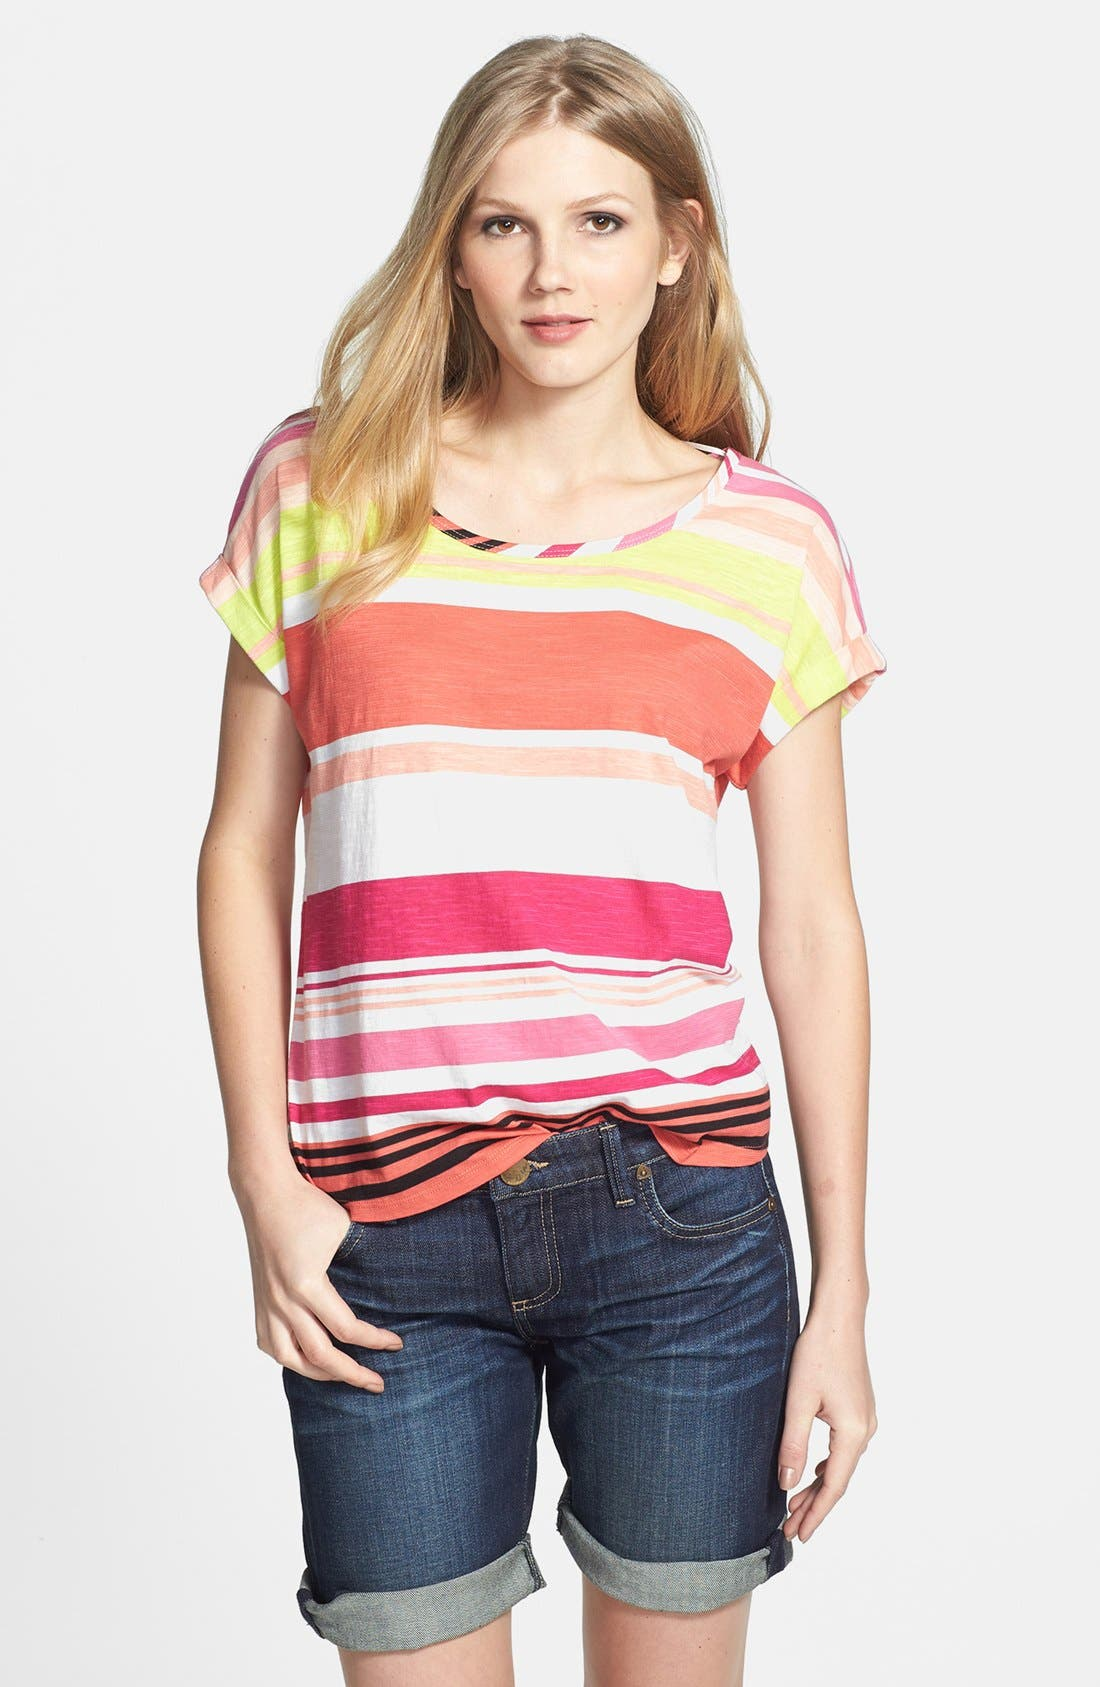 Alternate Image 1 Selected - Two by Vince Camuto 'Stripe Row' Cotton Tee